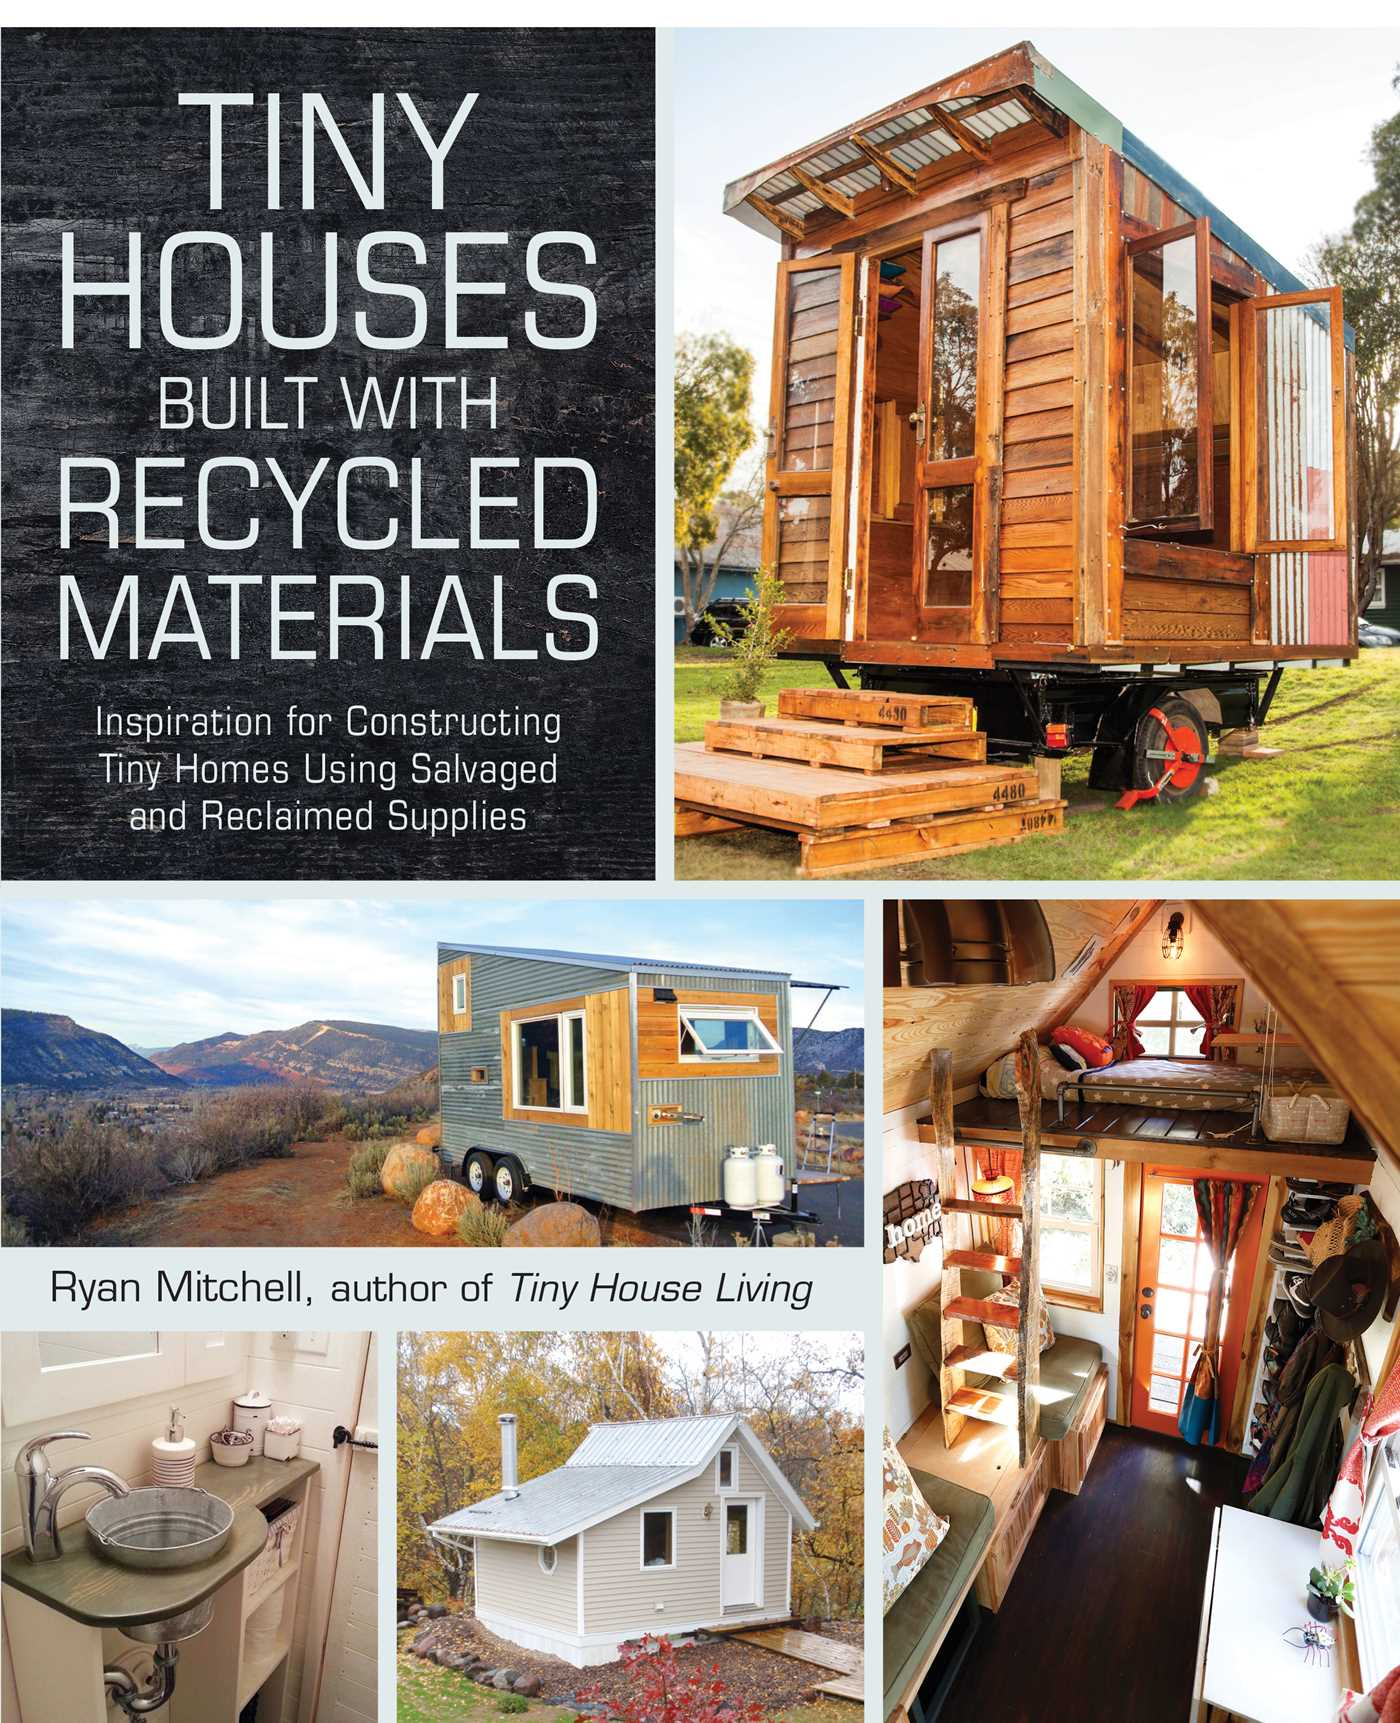 House From Recycled Materials : Tiny houses built with recycled materials book by ryan